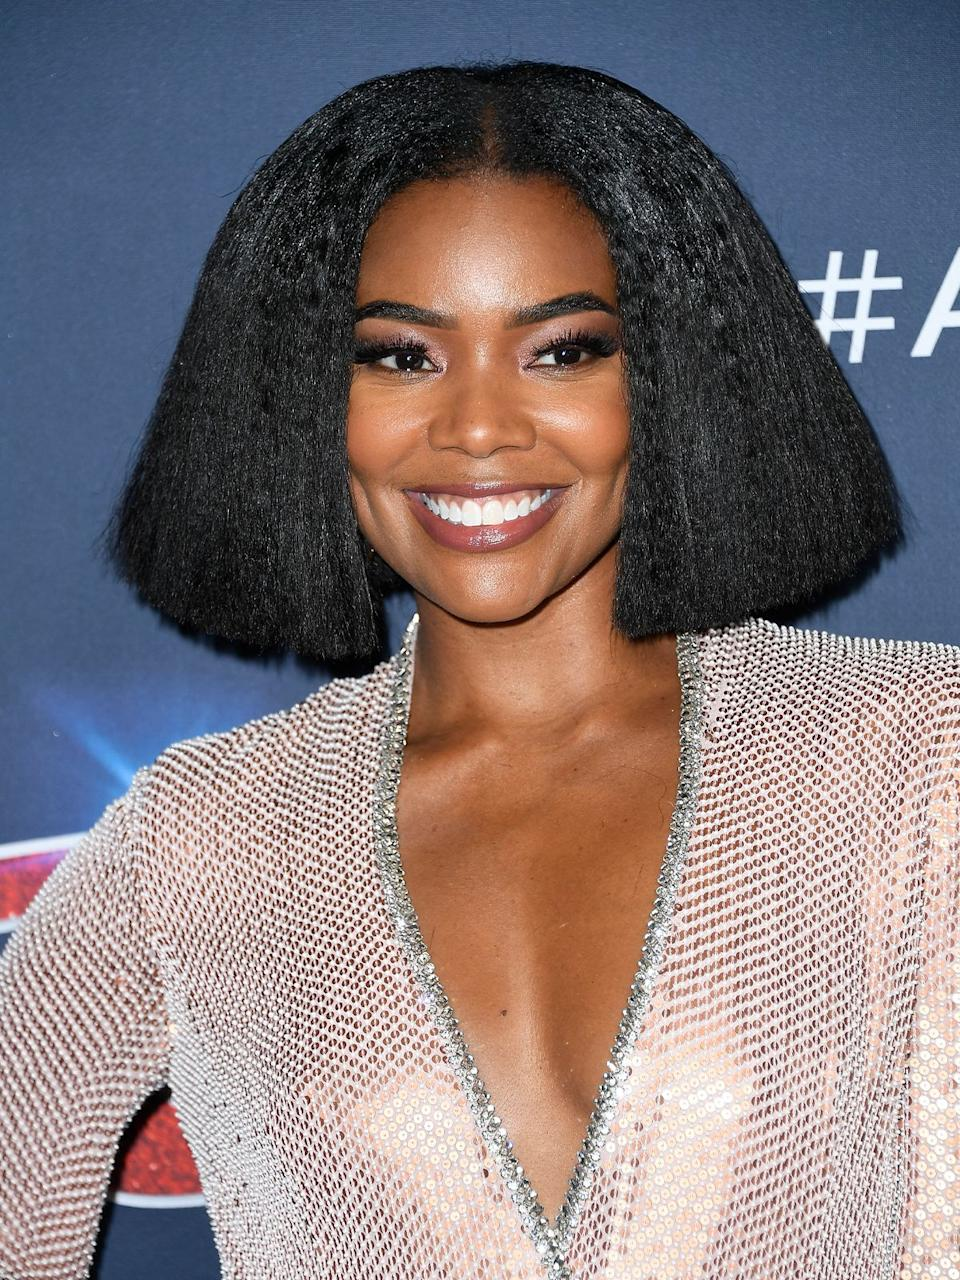 The Best Hair Colors For Dark Skin Tones According To Gabrielle Union S Stylist